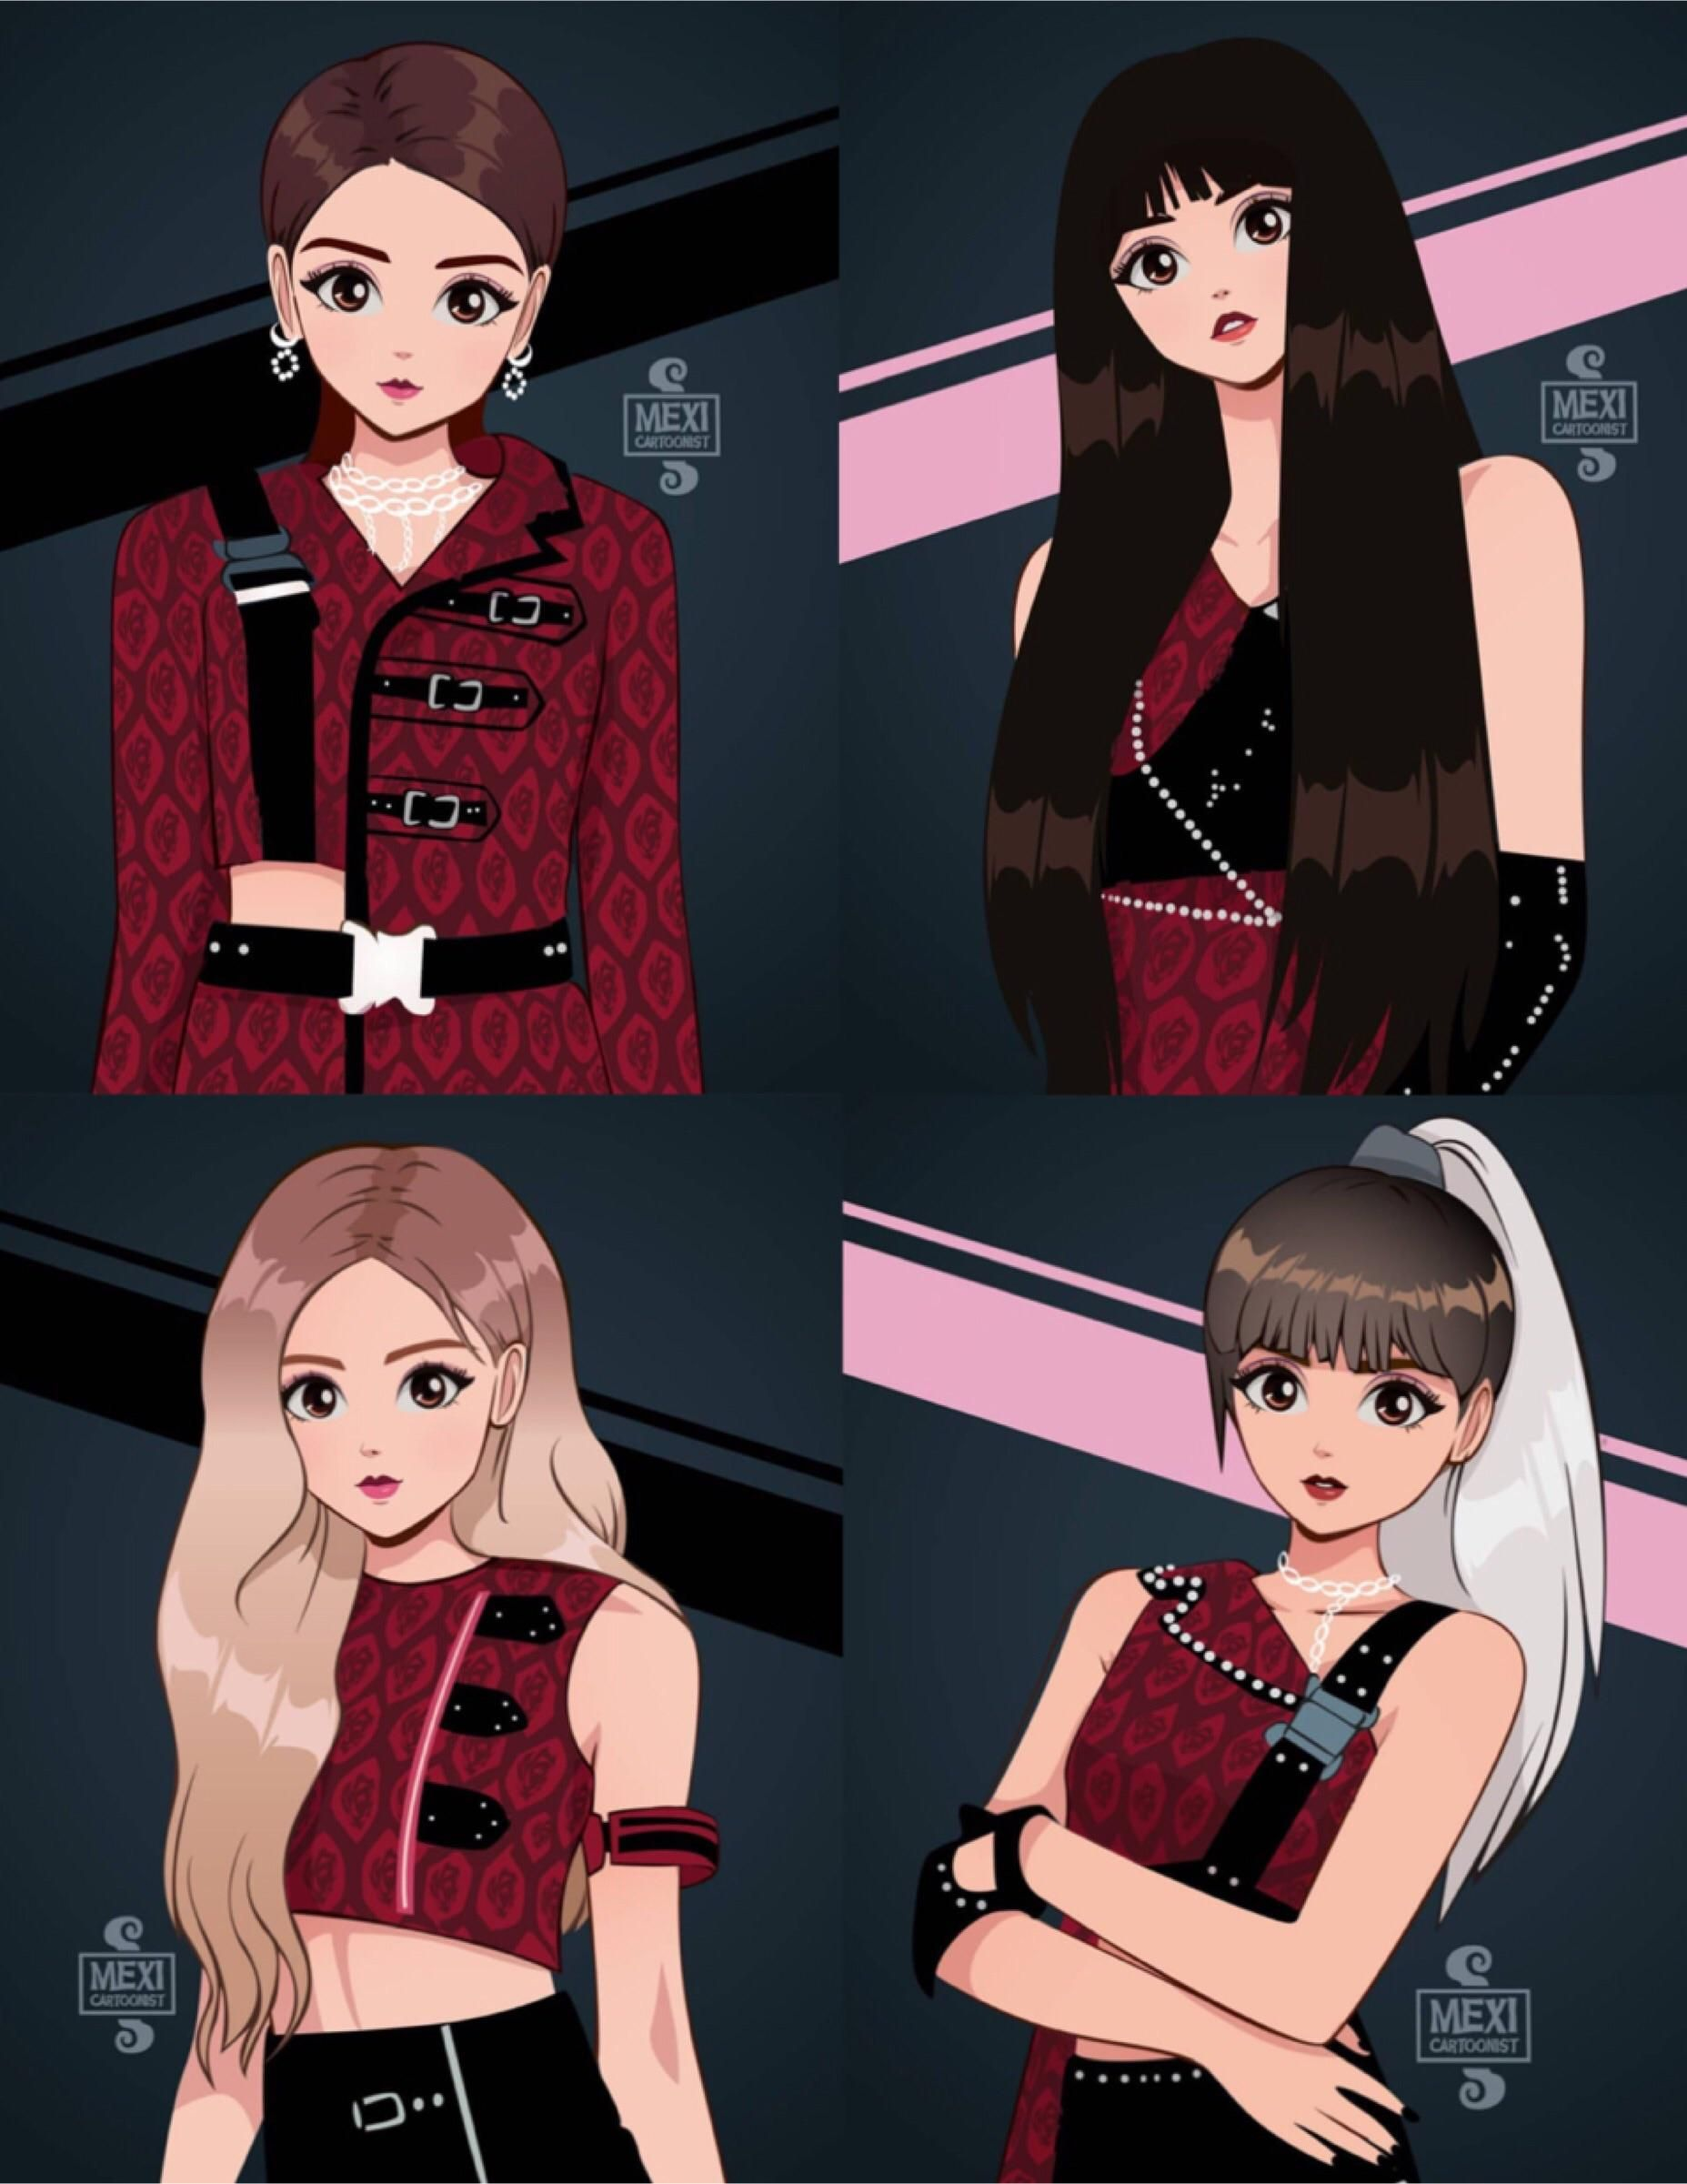 190405 BLACKPINK Kill This Love art done by